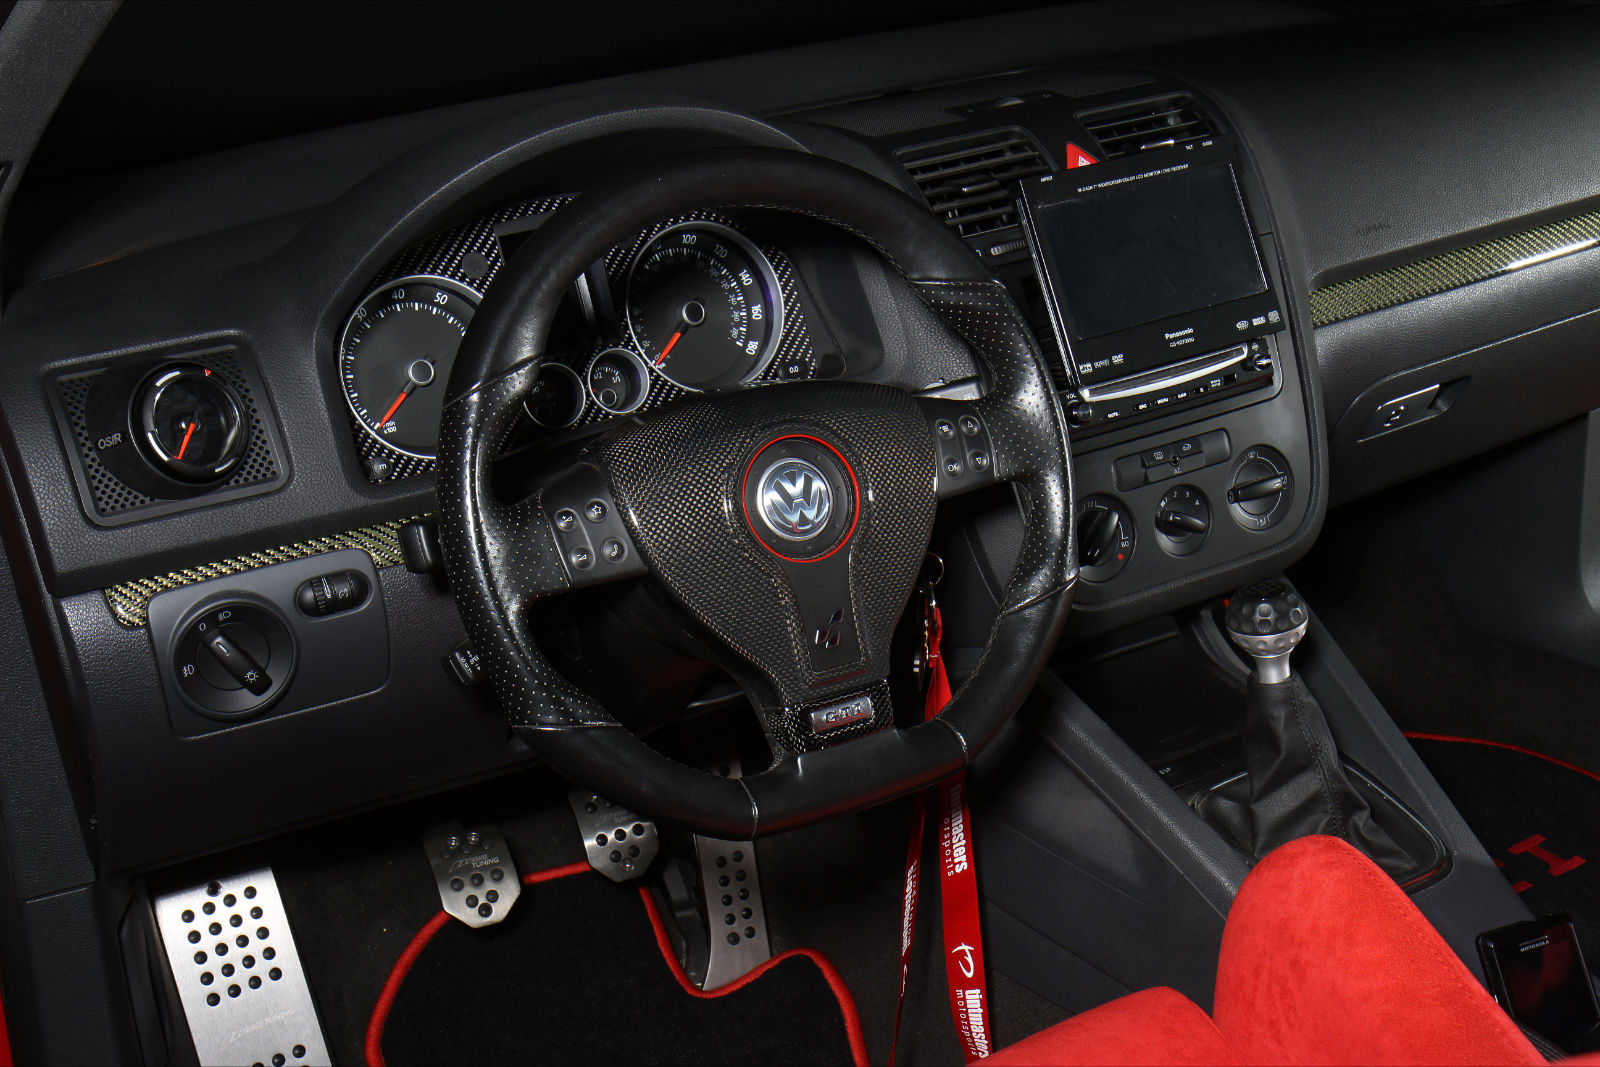 vw golf carbon interior - VW Tuning Mag